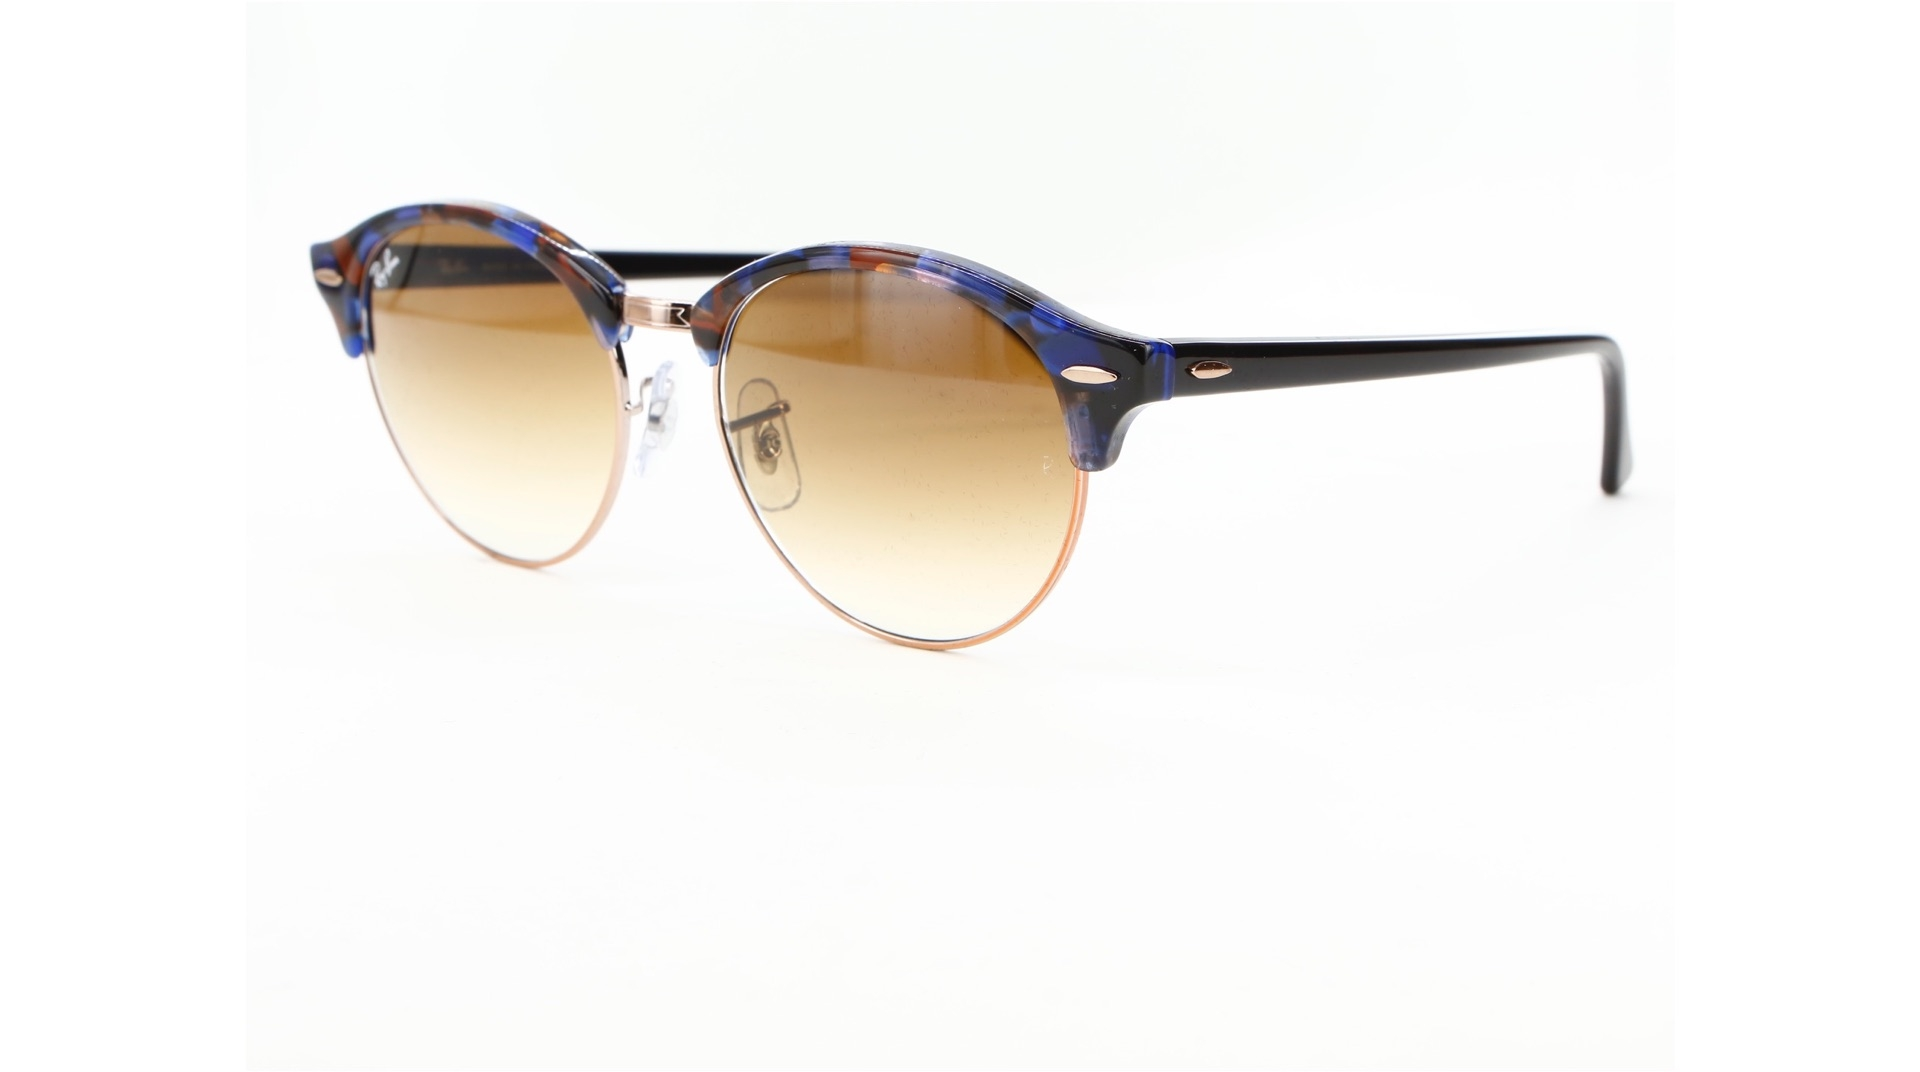 Ray-Ban - ref: 81085